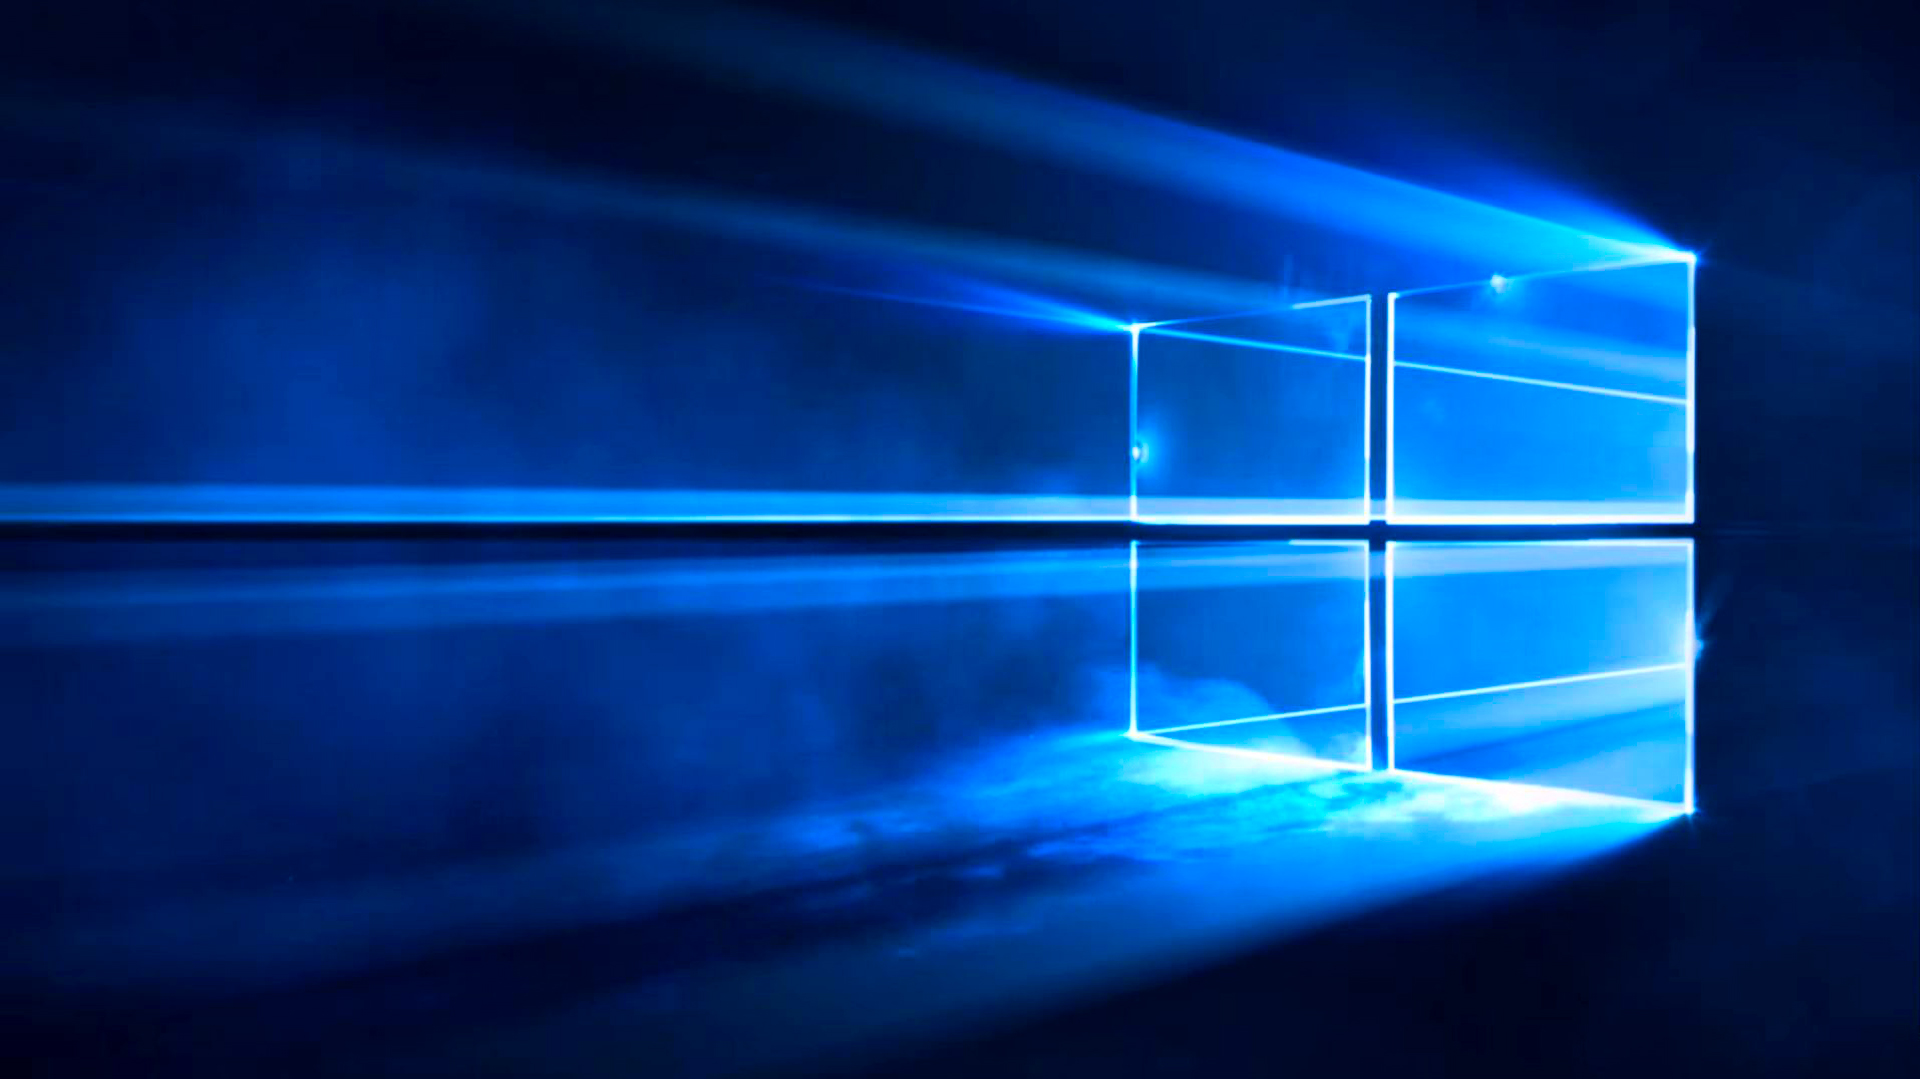 FLASH NEWS] Windows 10 Wallpaper Aus Licht wird Magie 1920x1080